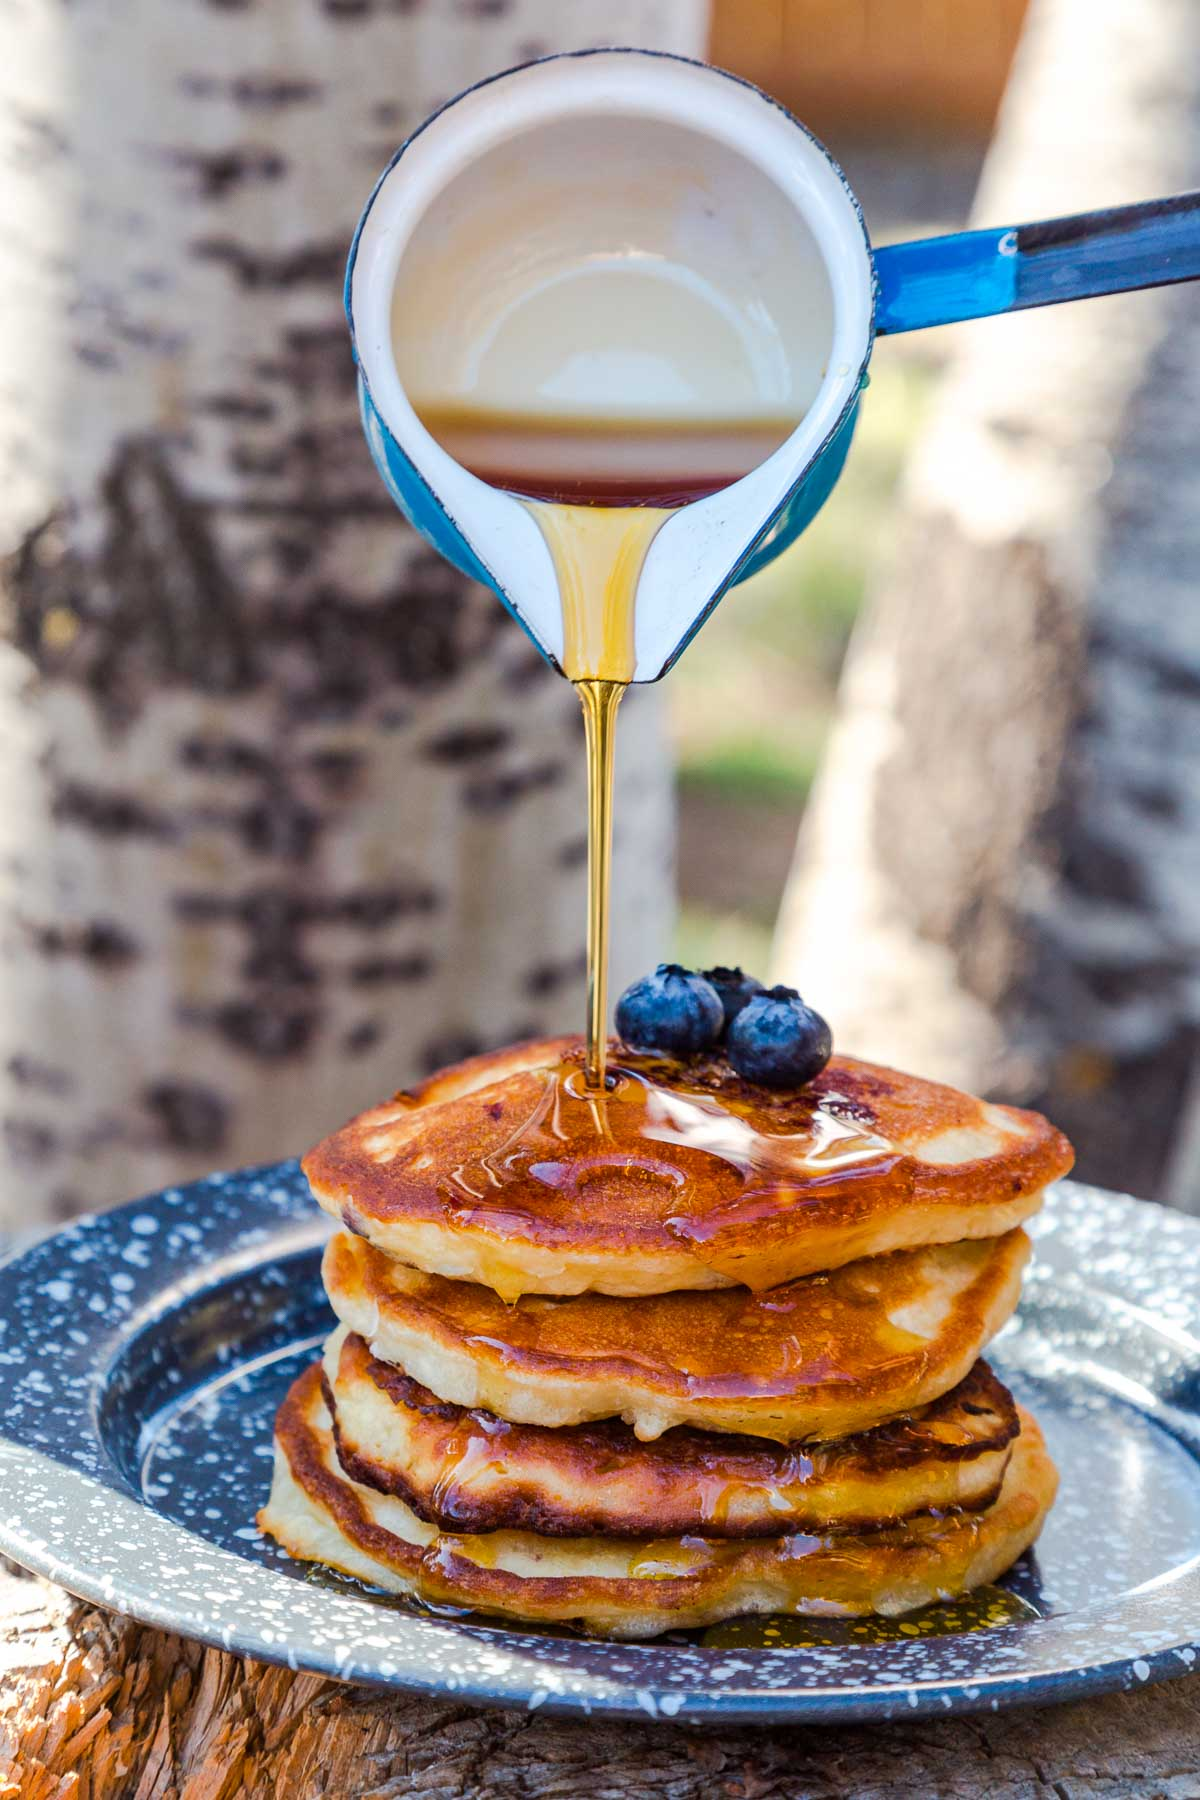 Pouring maple syrup over a stack of blueberry banana pancakes